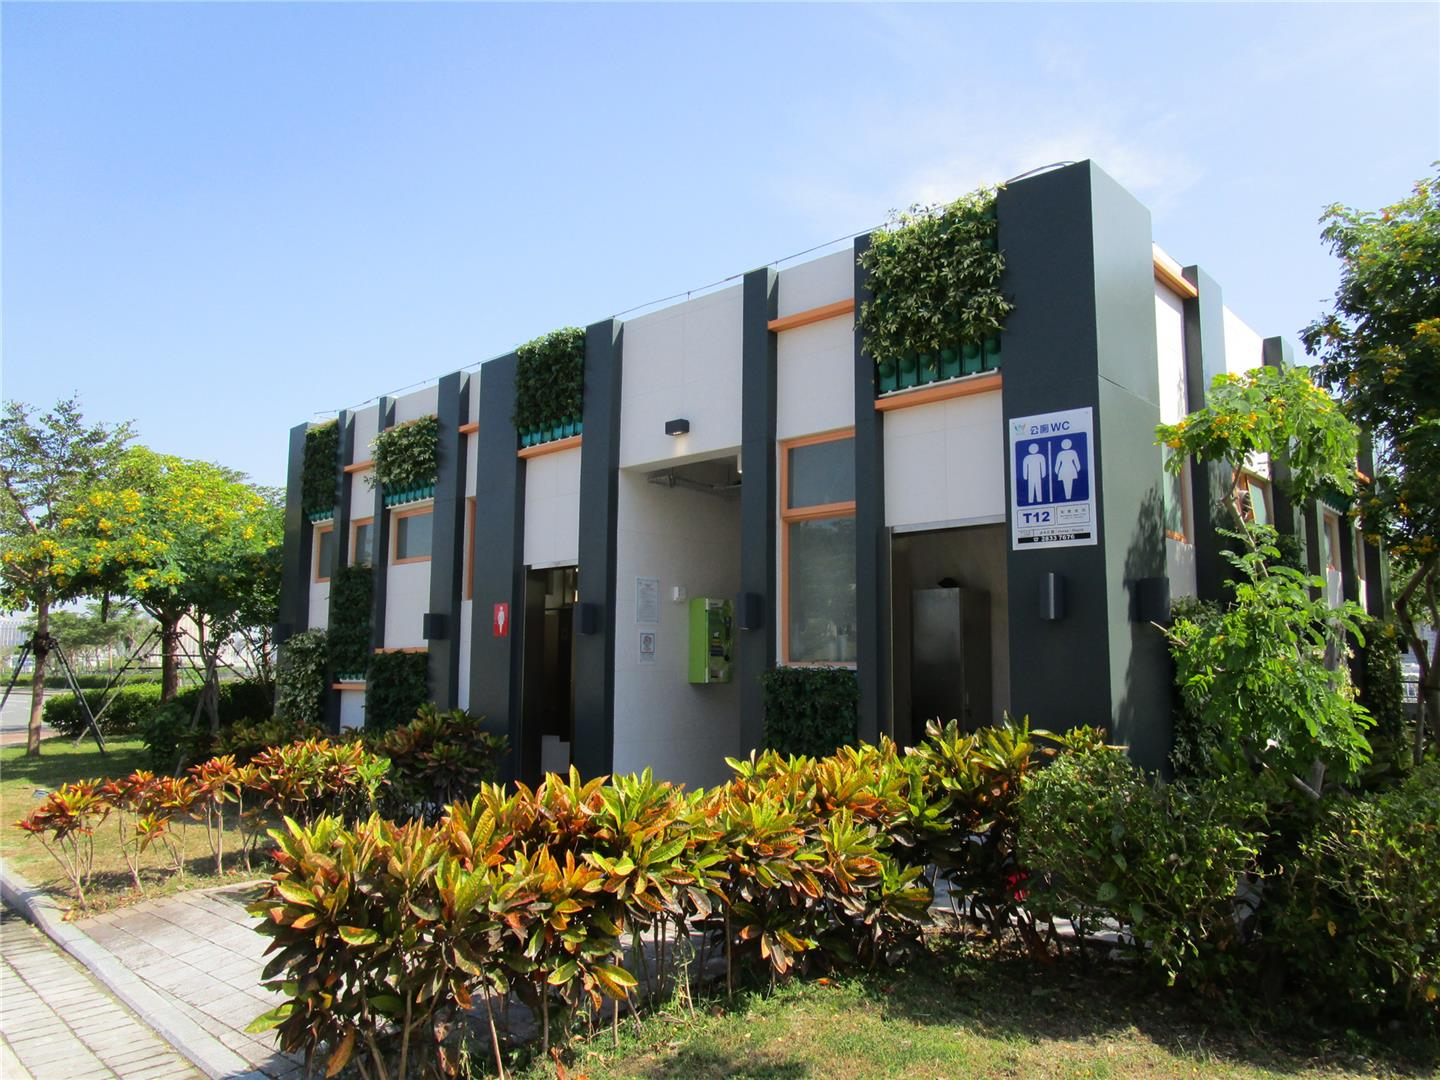 T12 Public toilet in the south of the Campus of University of Macau in Hengqin (near riverside)